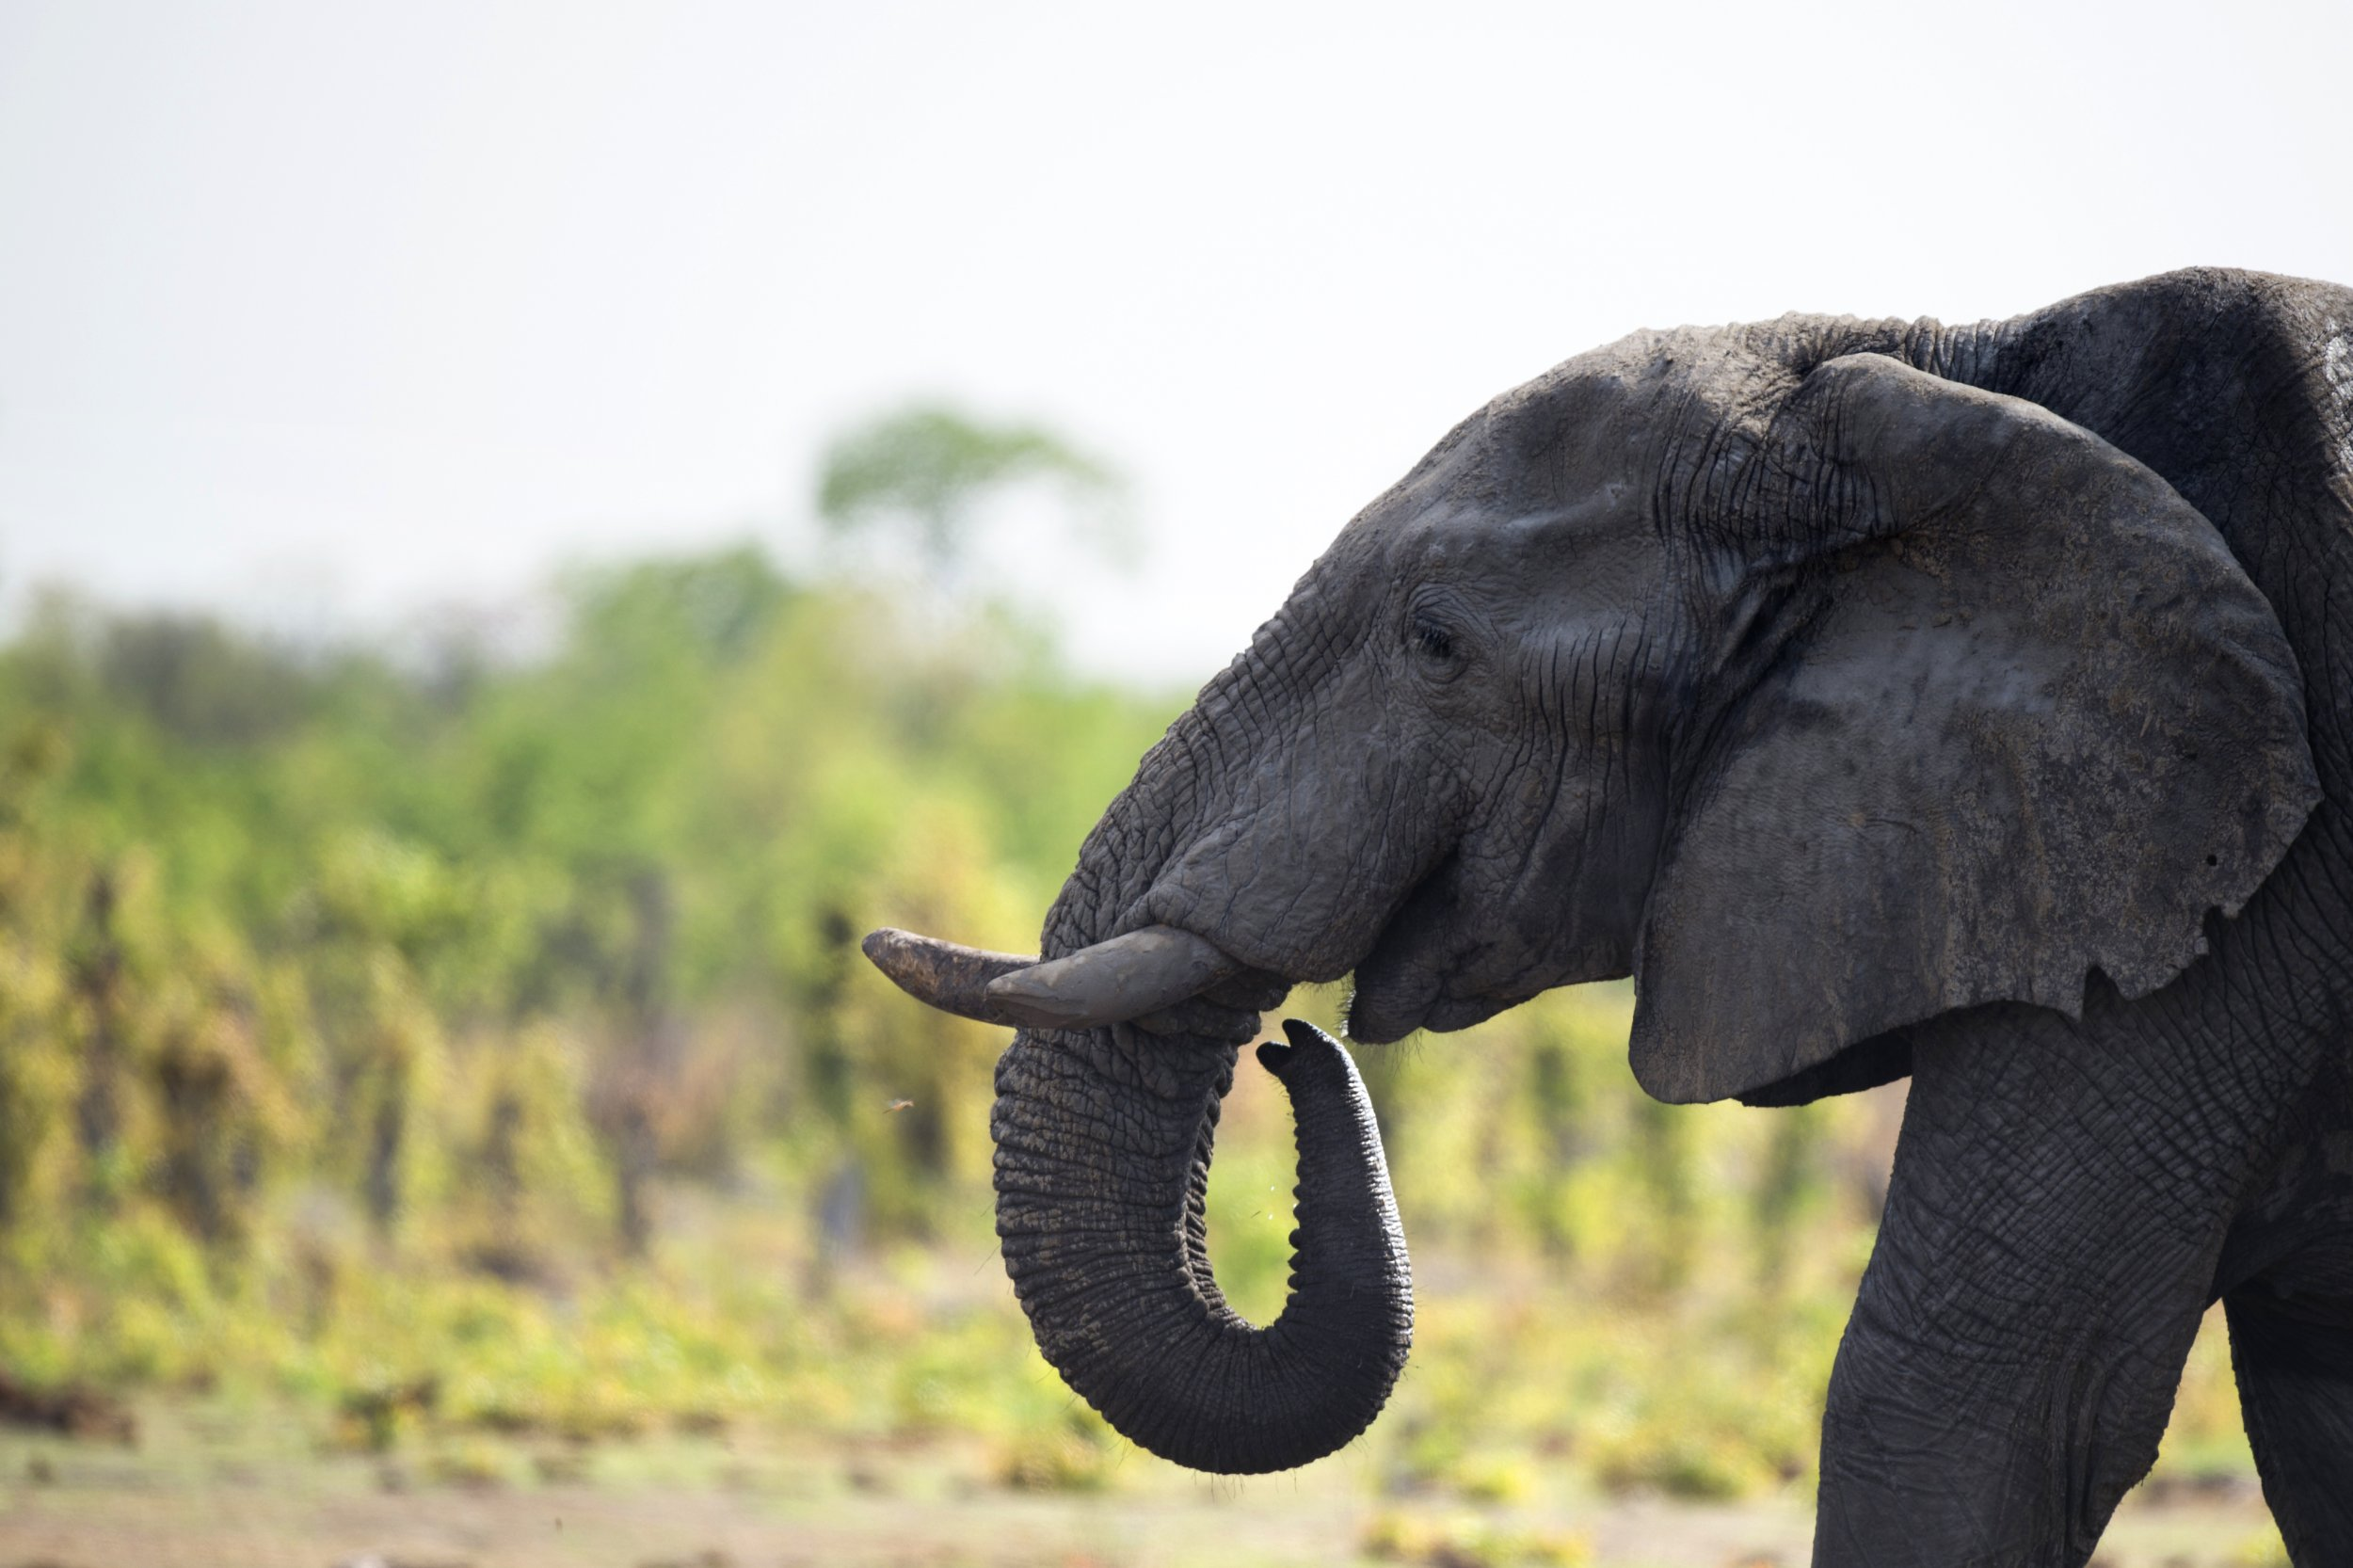 An African elephant is seen in Hwange National Park, Zimbabwe.